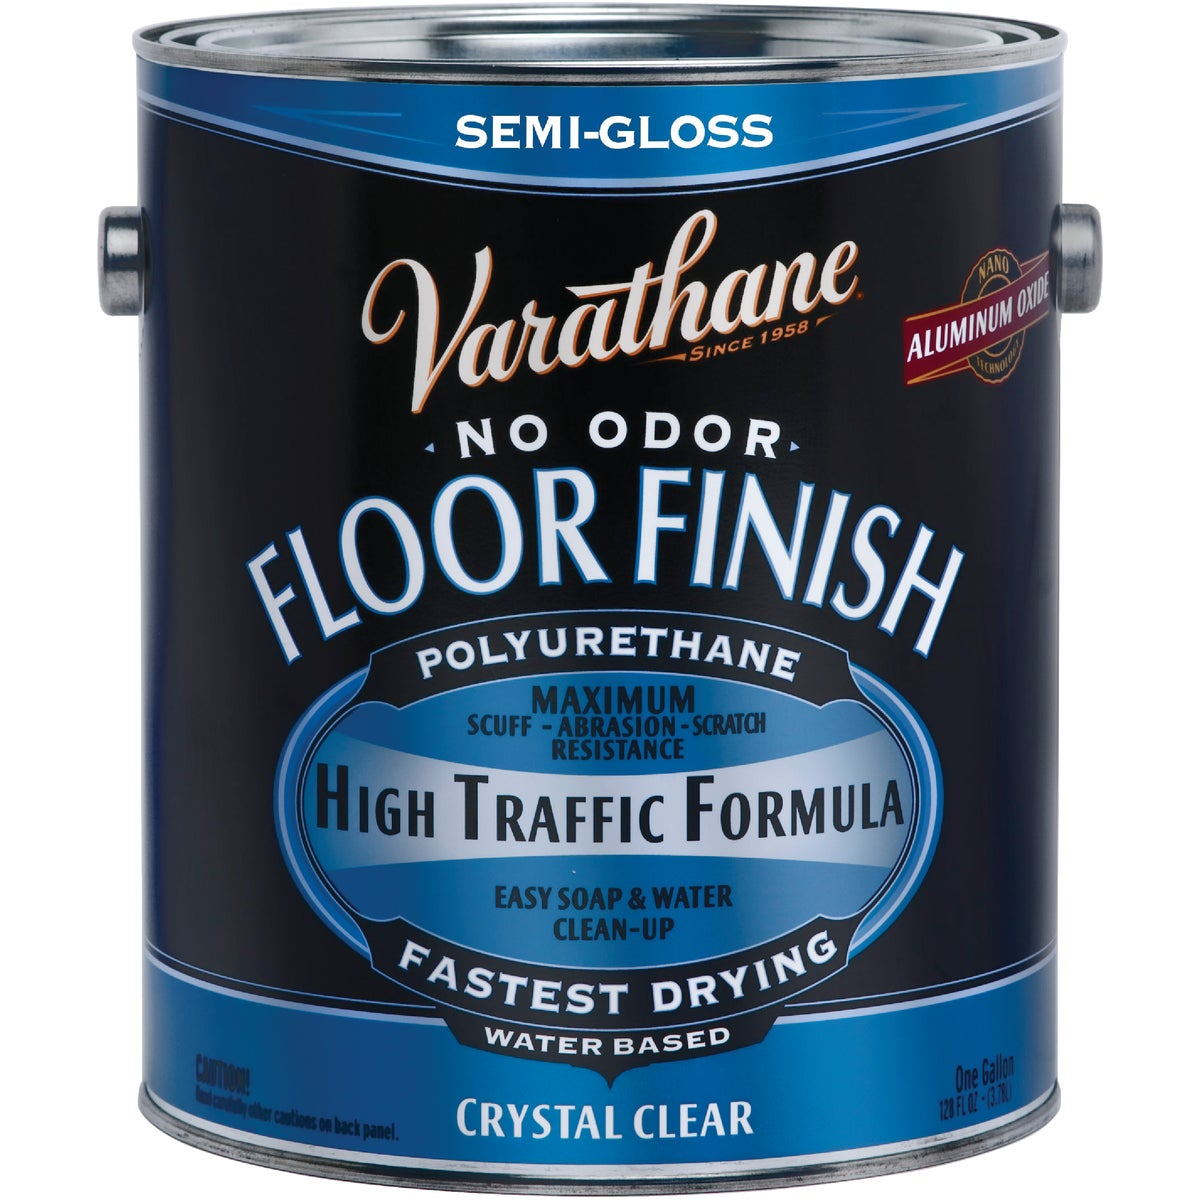 INT S/G W/B FLOOR FINISH - 230131 by Rustoleum